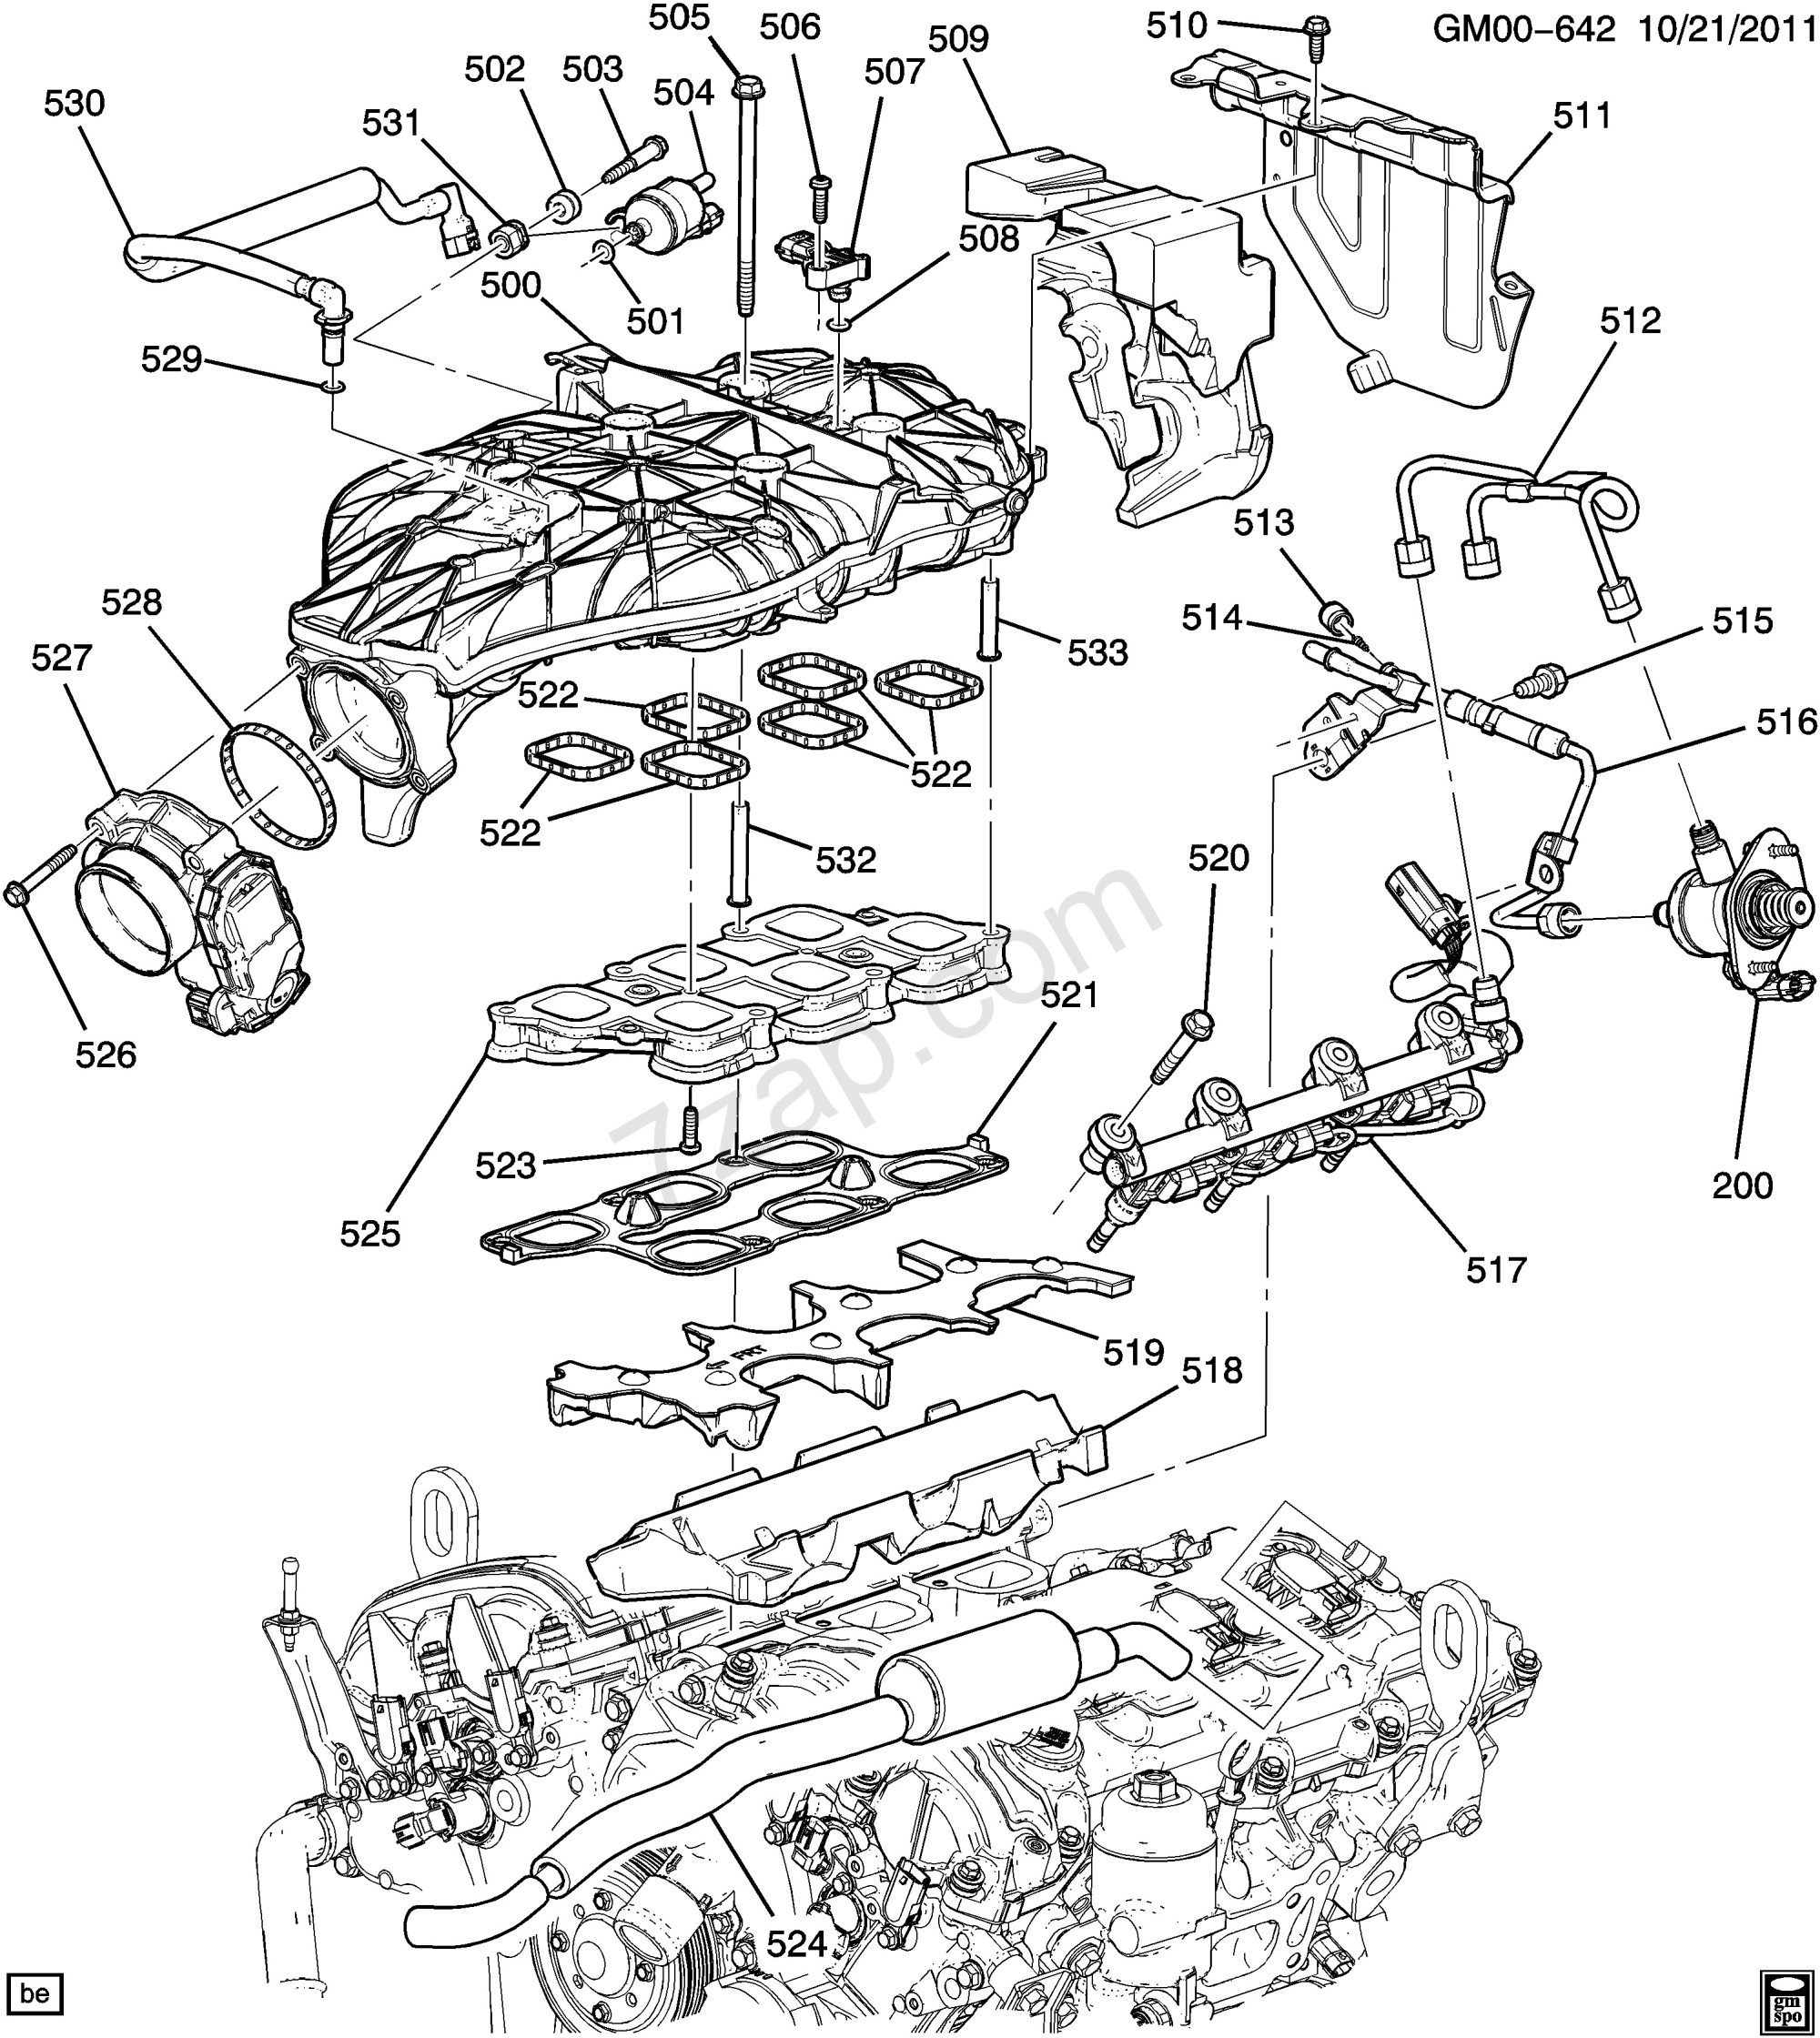 hight resolution of cadillac 3 6 v6 engine diagram wiring diagram split cadillac 3 6 engine diagram